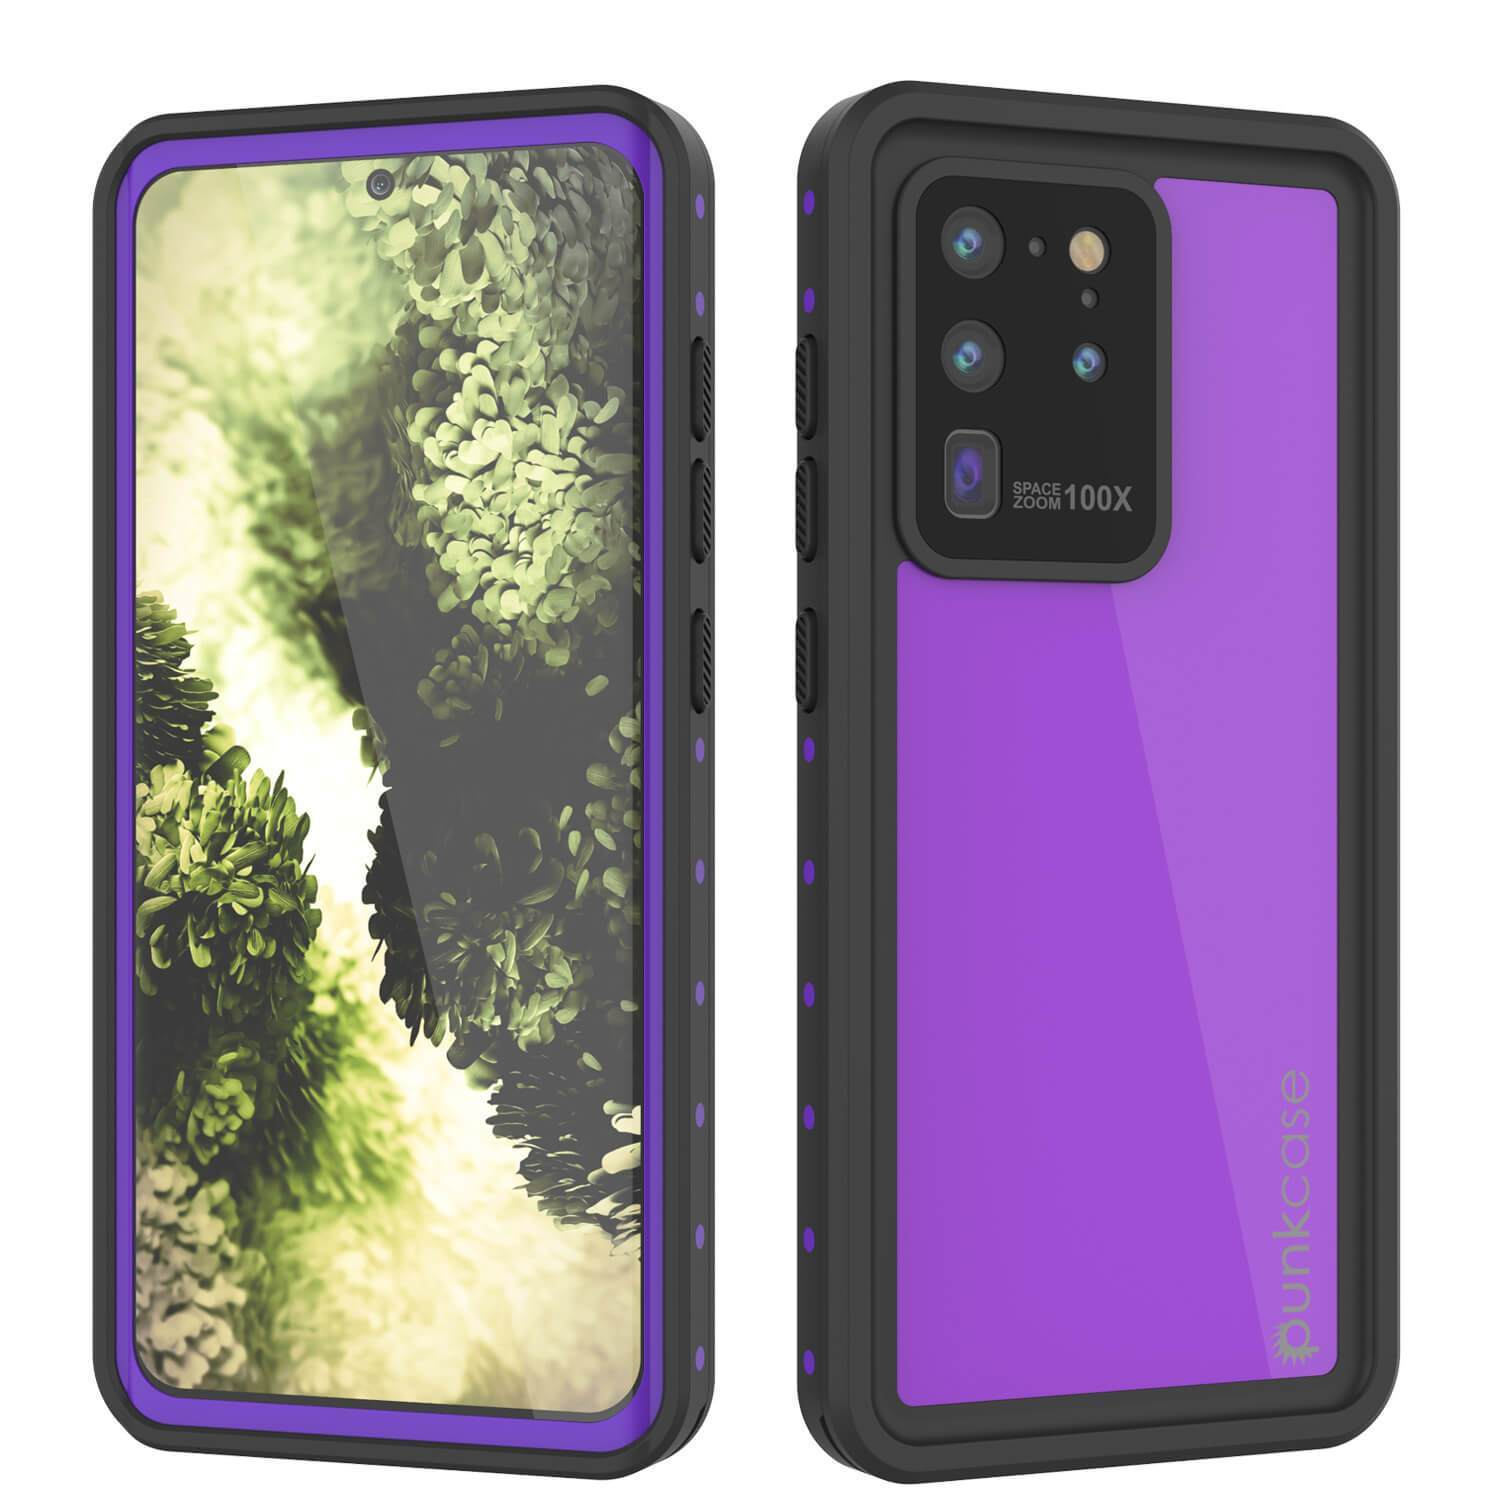 Galaxy S20 Ultra Waterproof Case PunkCase StudStar Purple Thin 6.6ft Underwater IP68 Shock/Snow Proof